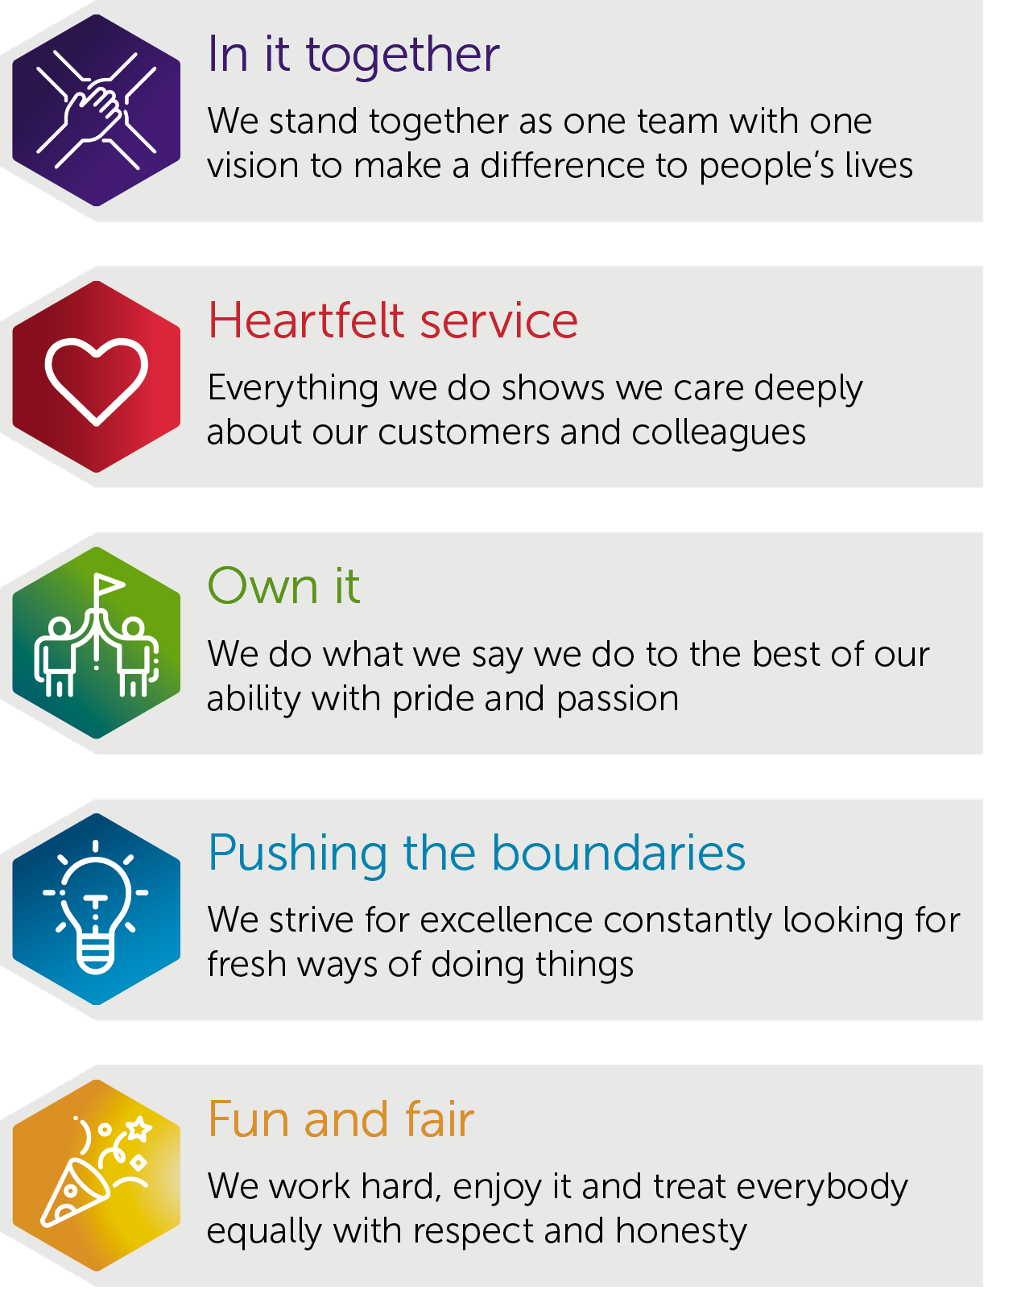 Longhurst Group's values – In it together, Heartfelt service, Own it, Pushing the boundaries, Own it, Fun and fair